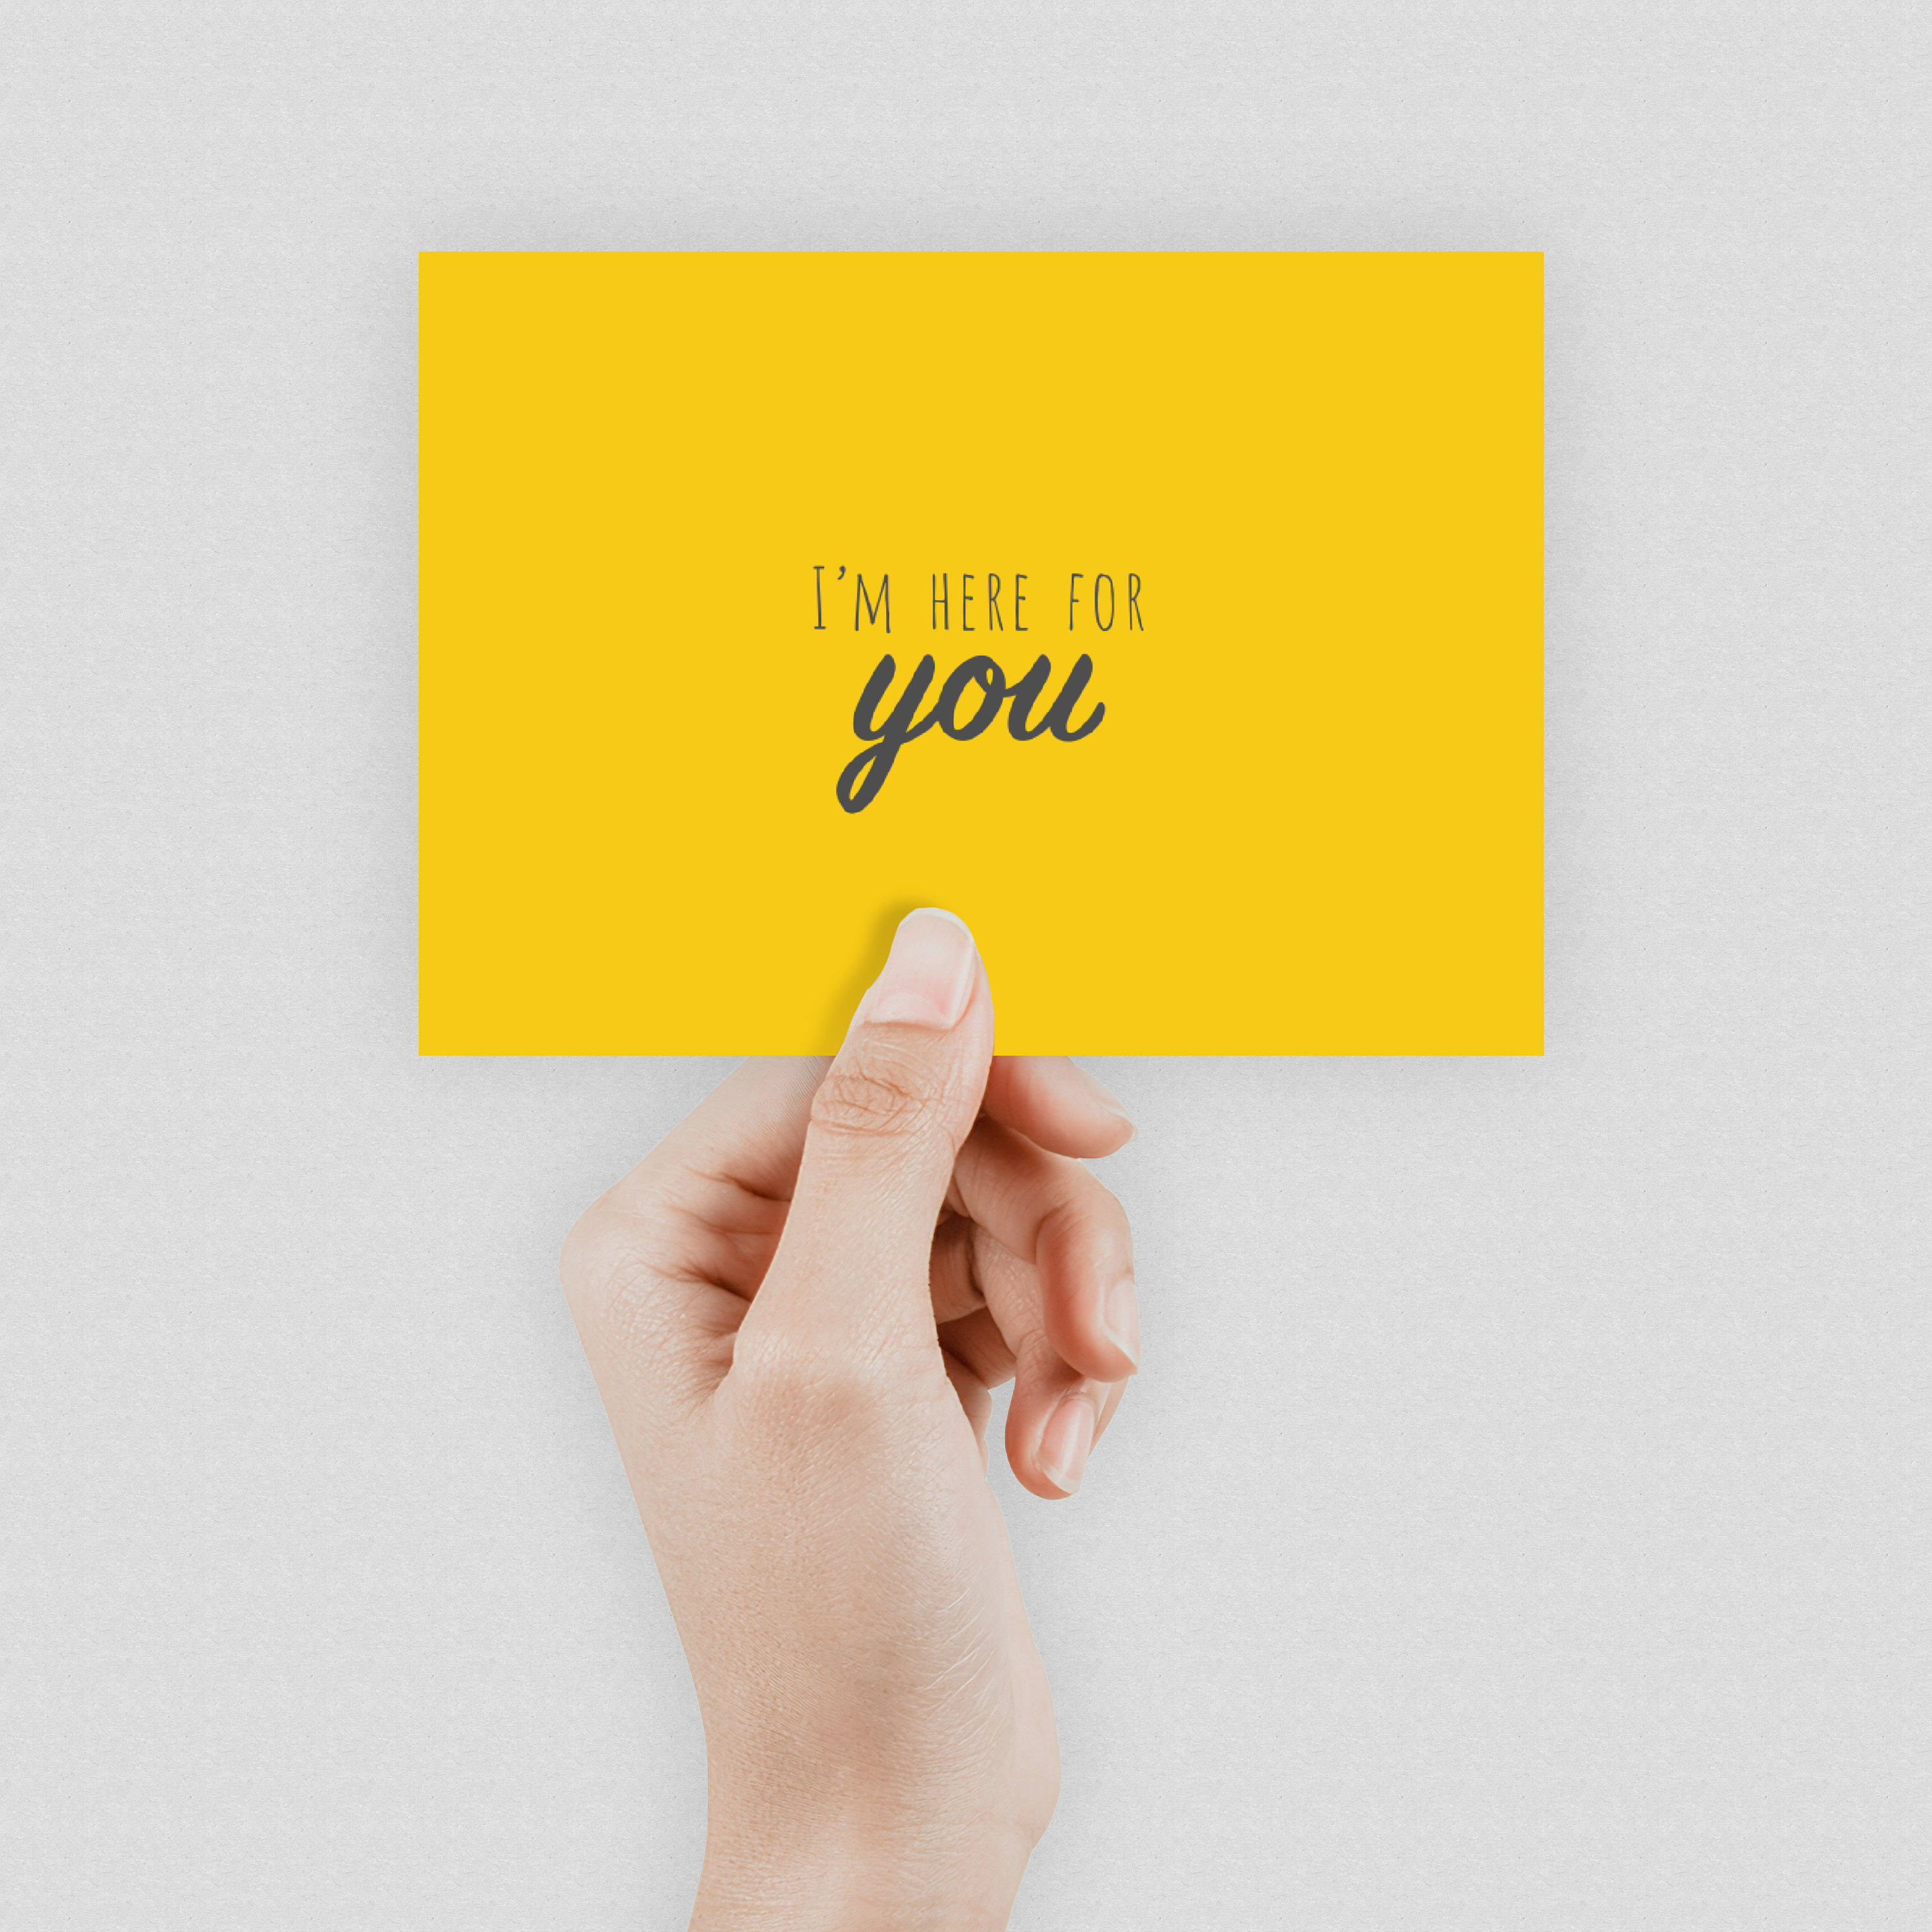 """A hand holding a bright yellow postcard which says """"Here for you"""" in the middle"""